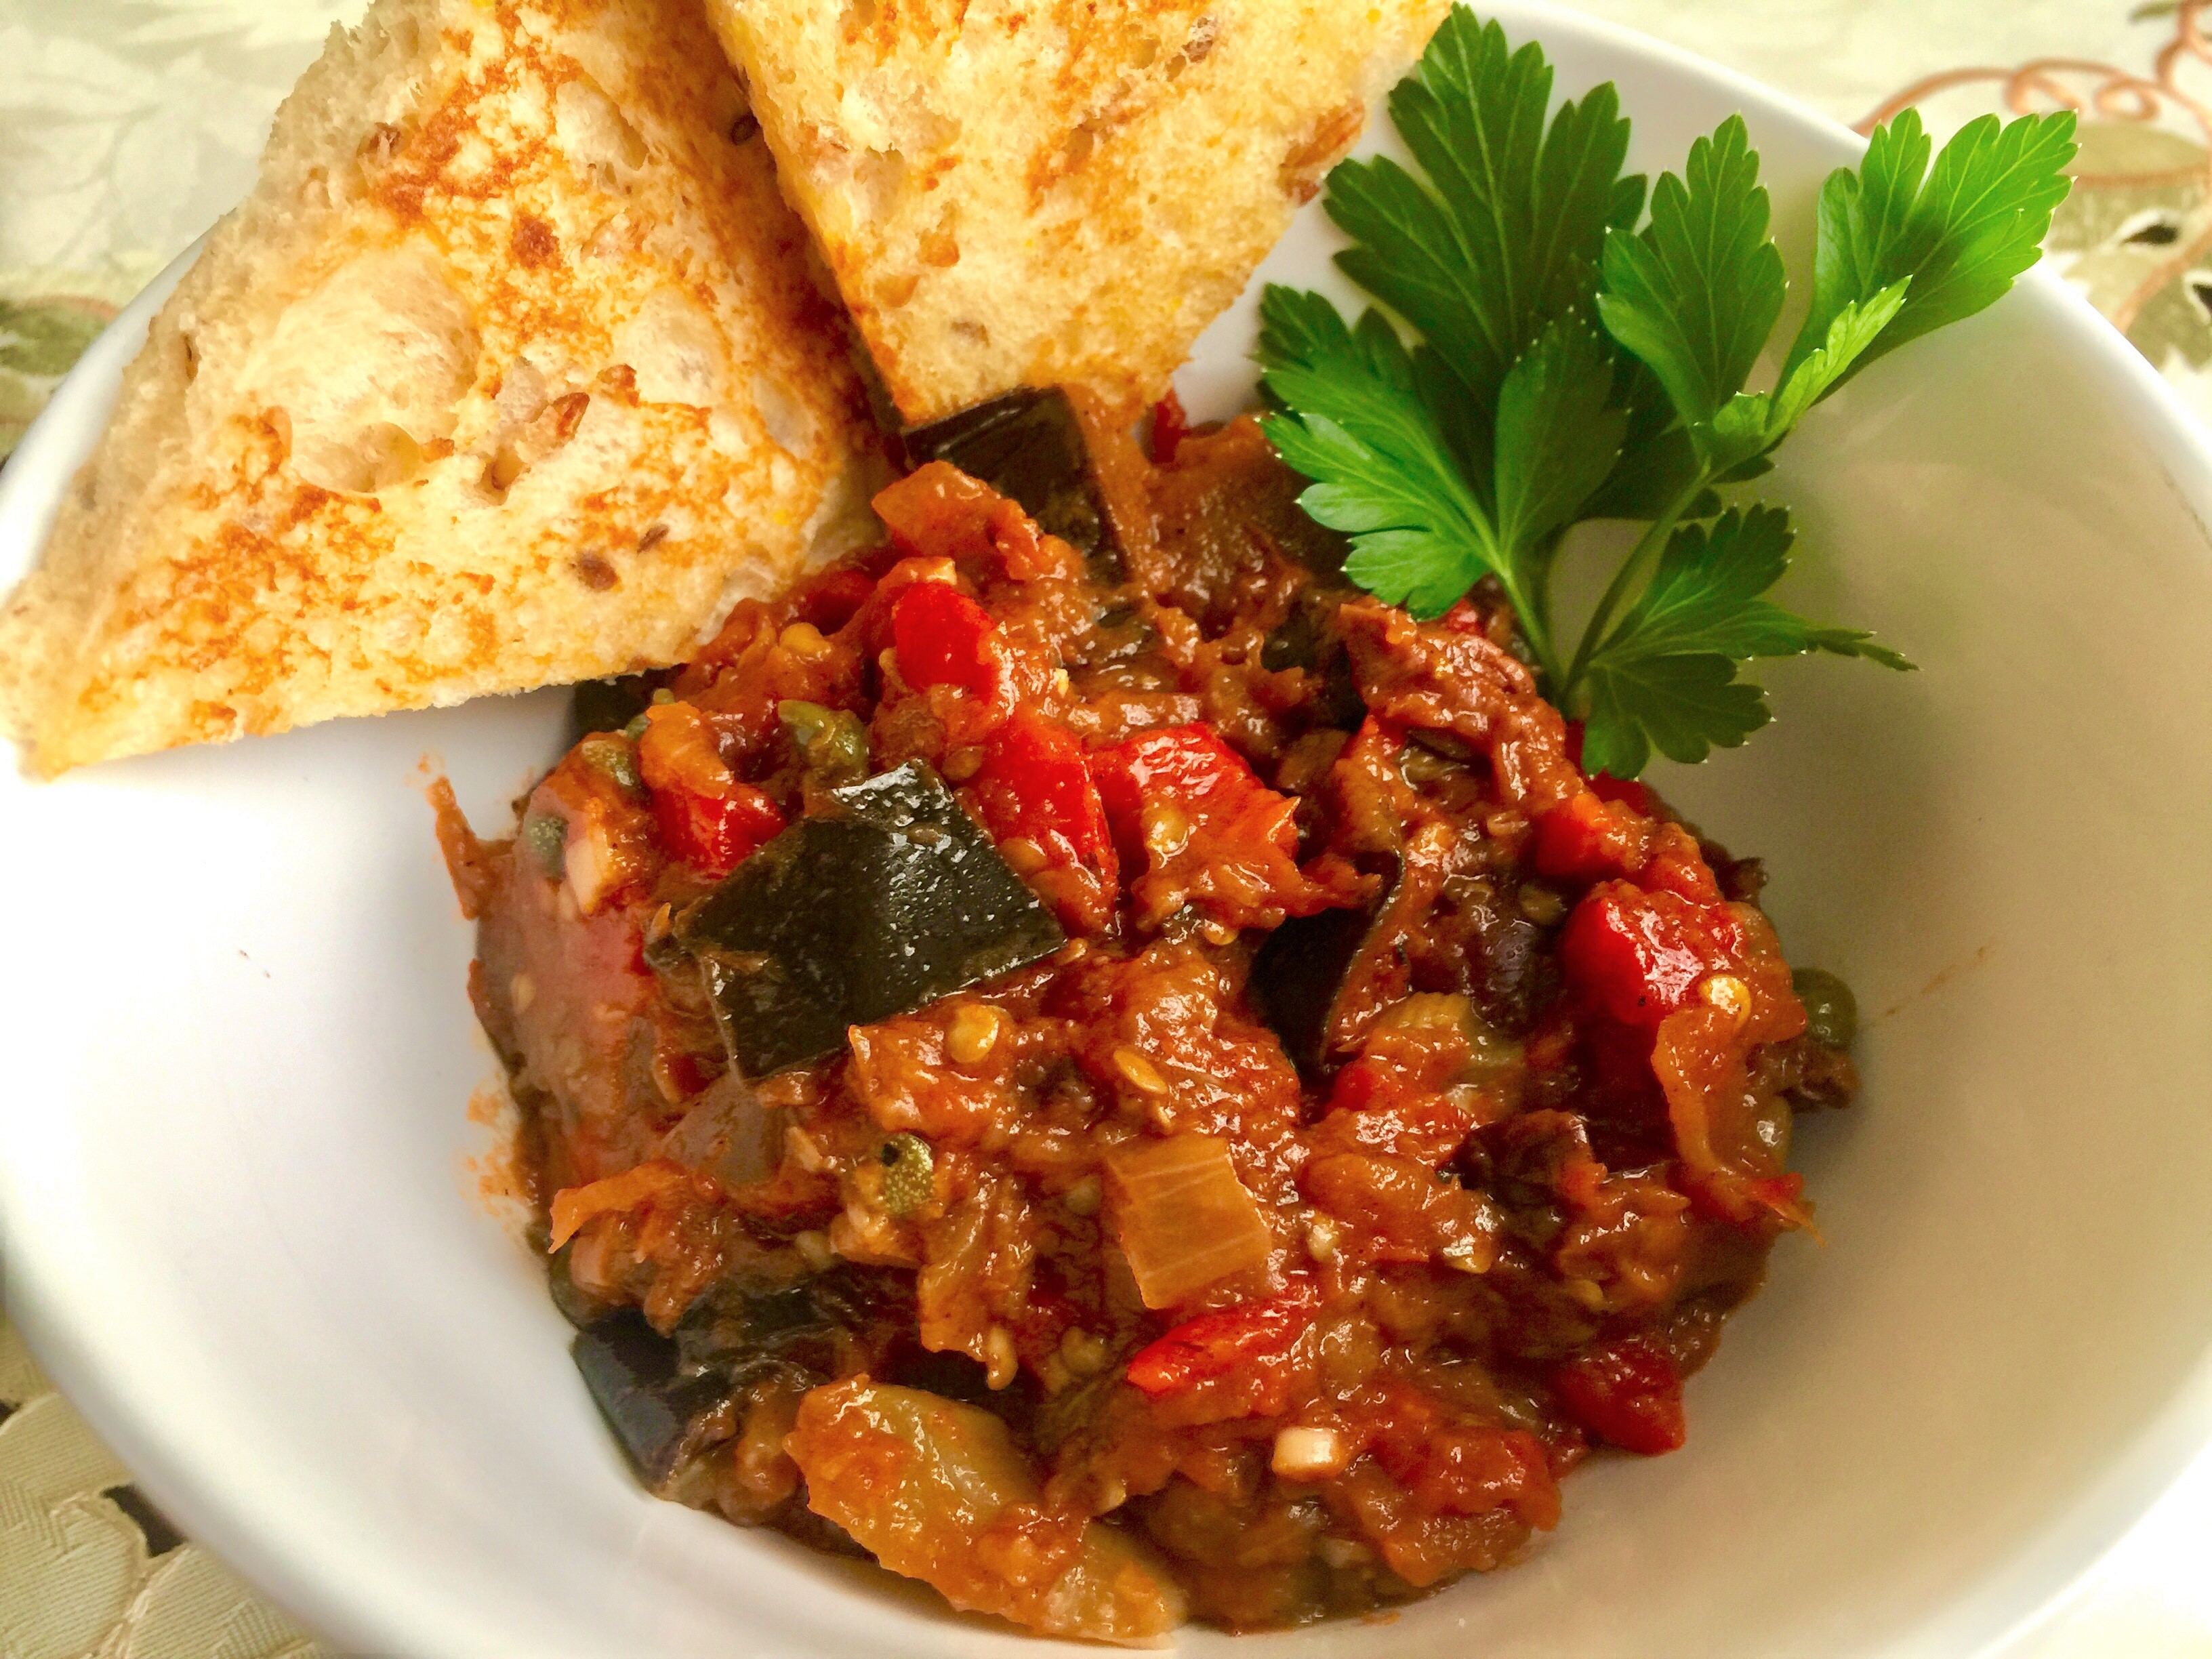 Bowl of Eggplant Caponata